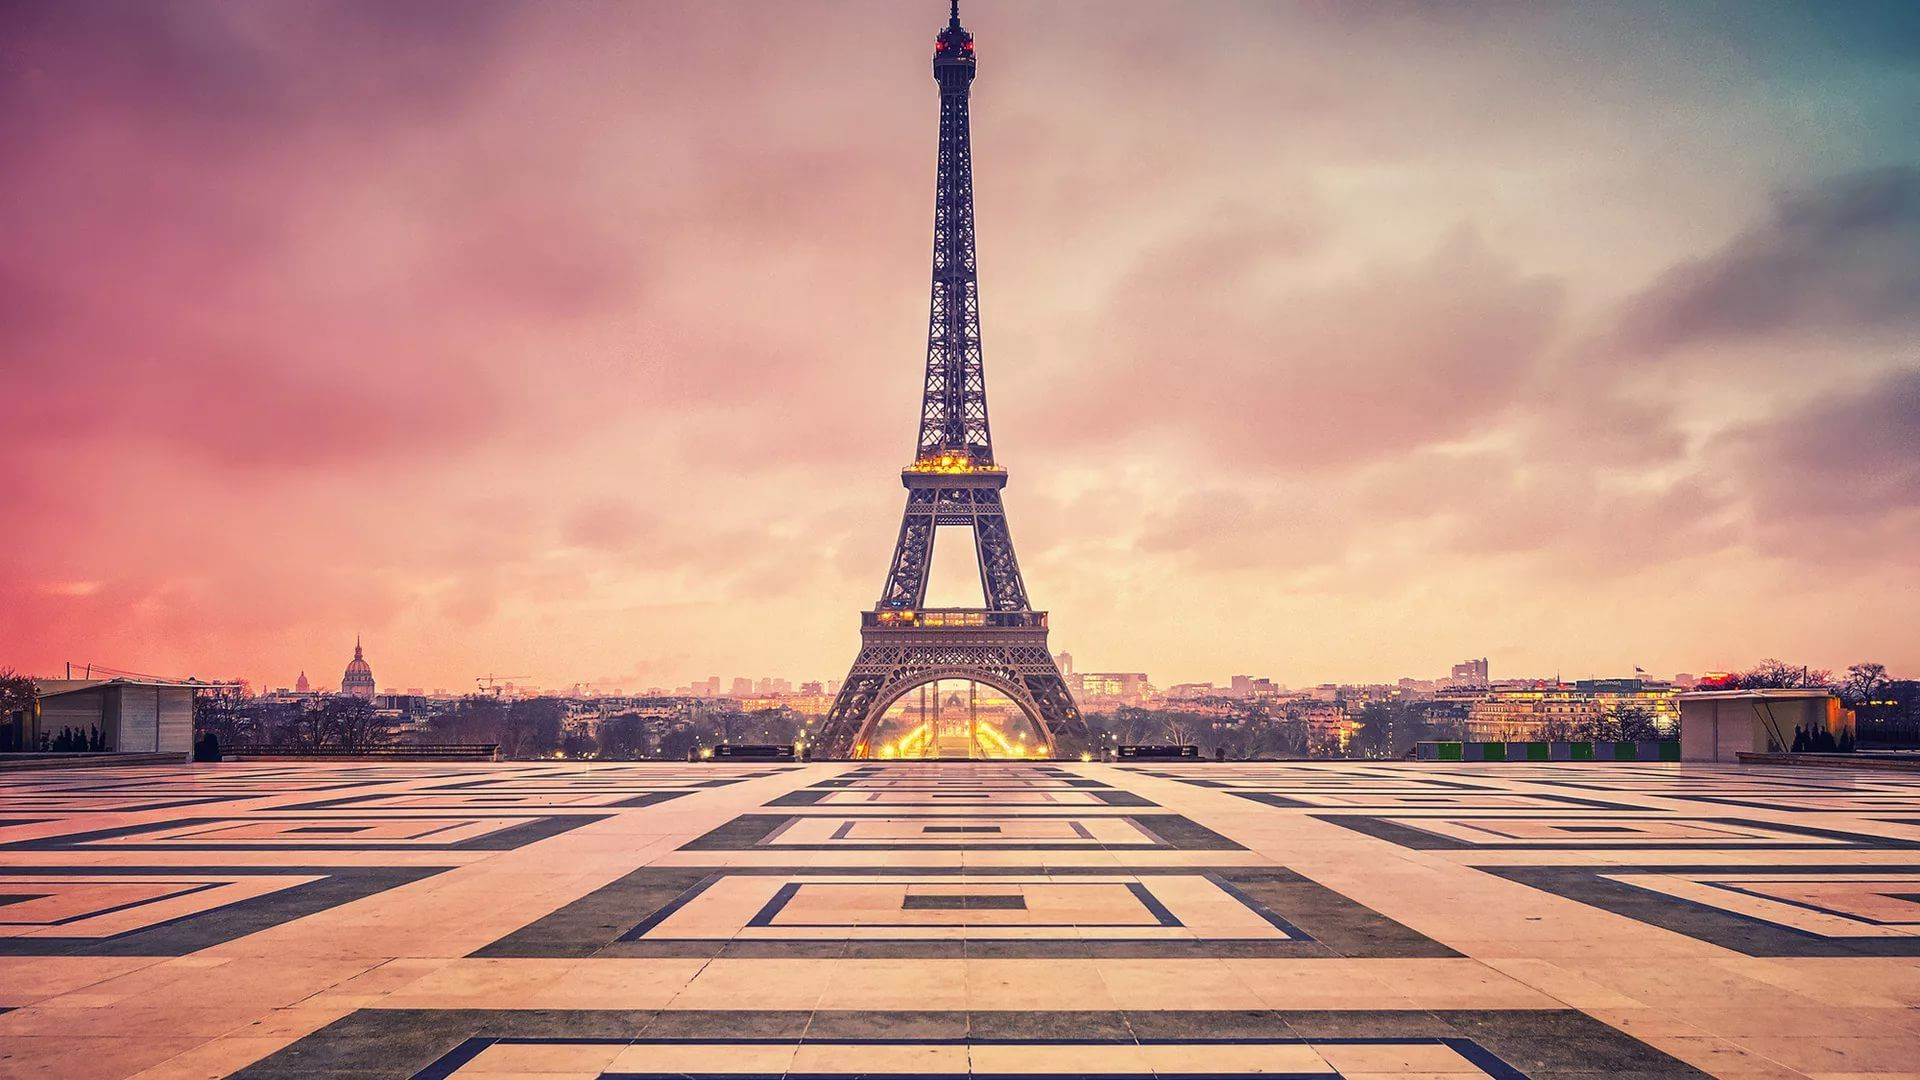 Cute Paris wallpaper image